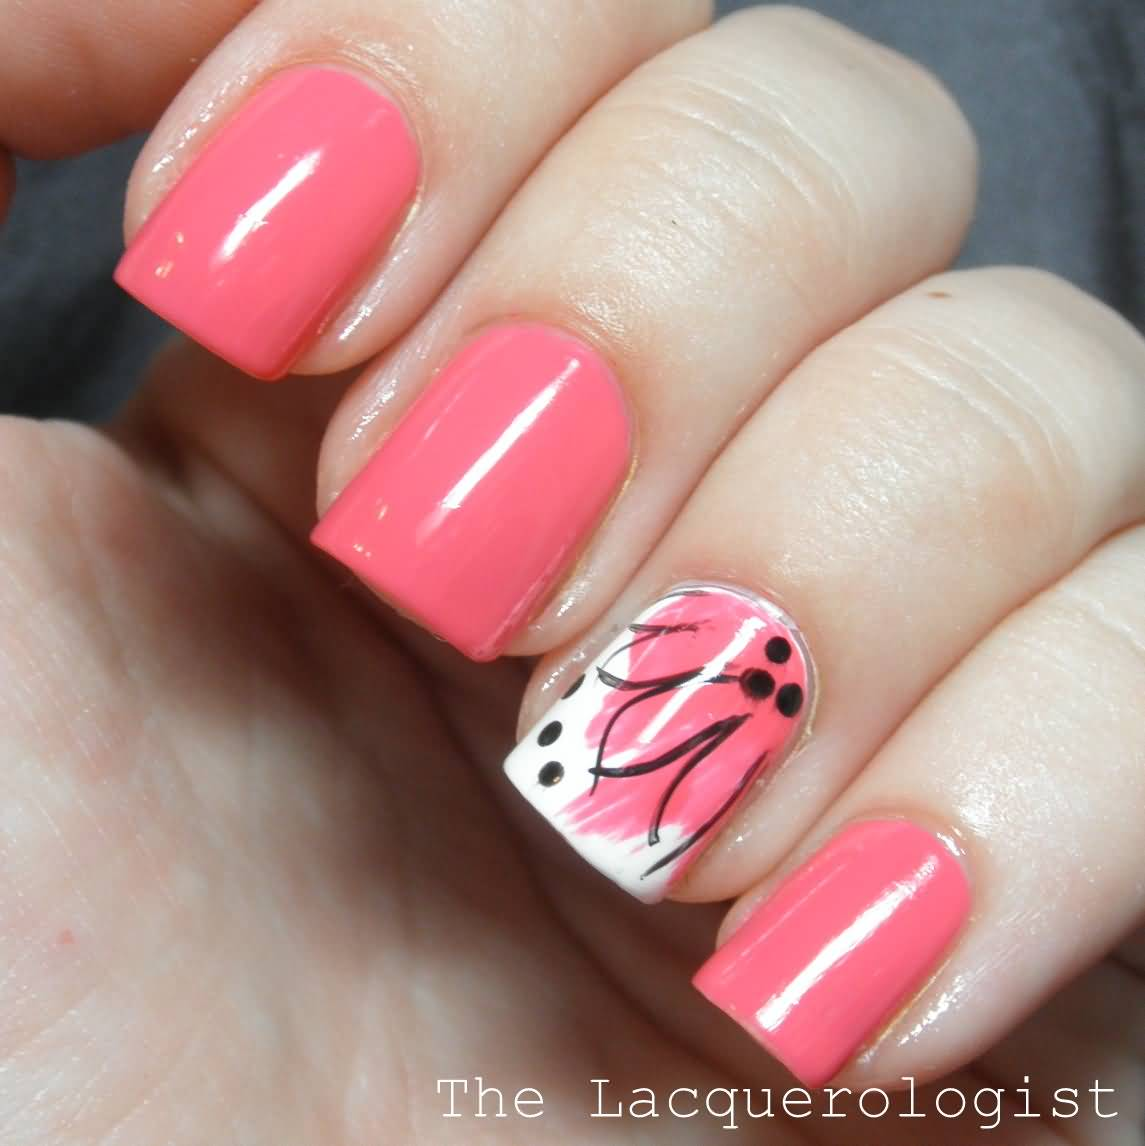 Pink Flower Accent Nail Design - 35 Best Flower Accent Nail Art Ideas